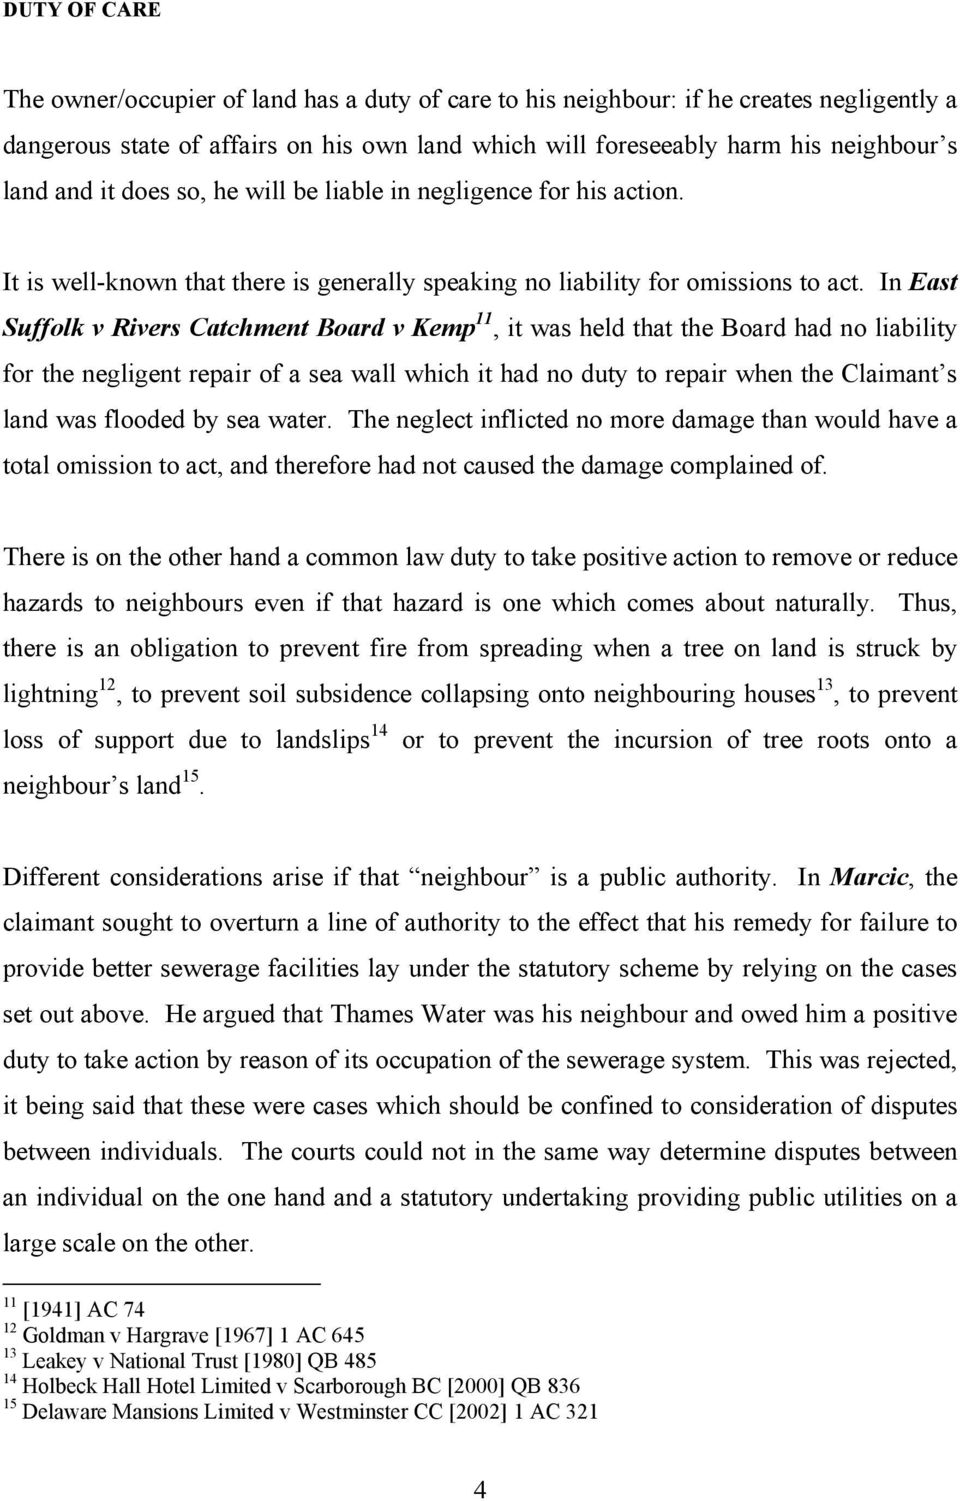 In East Suffolk v Rivers Catchment Board v Kemp 11, it was held that the Board had no liability for the negligent repair of a sea wall which it had no duty to repair when the Claimant s land was